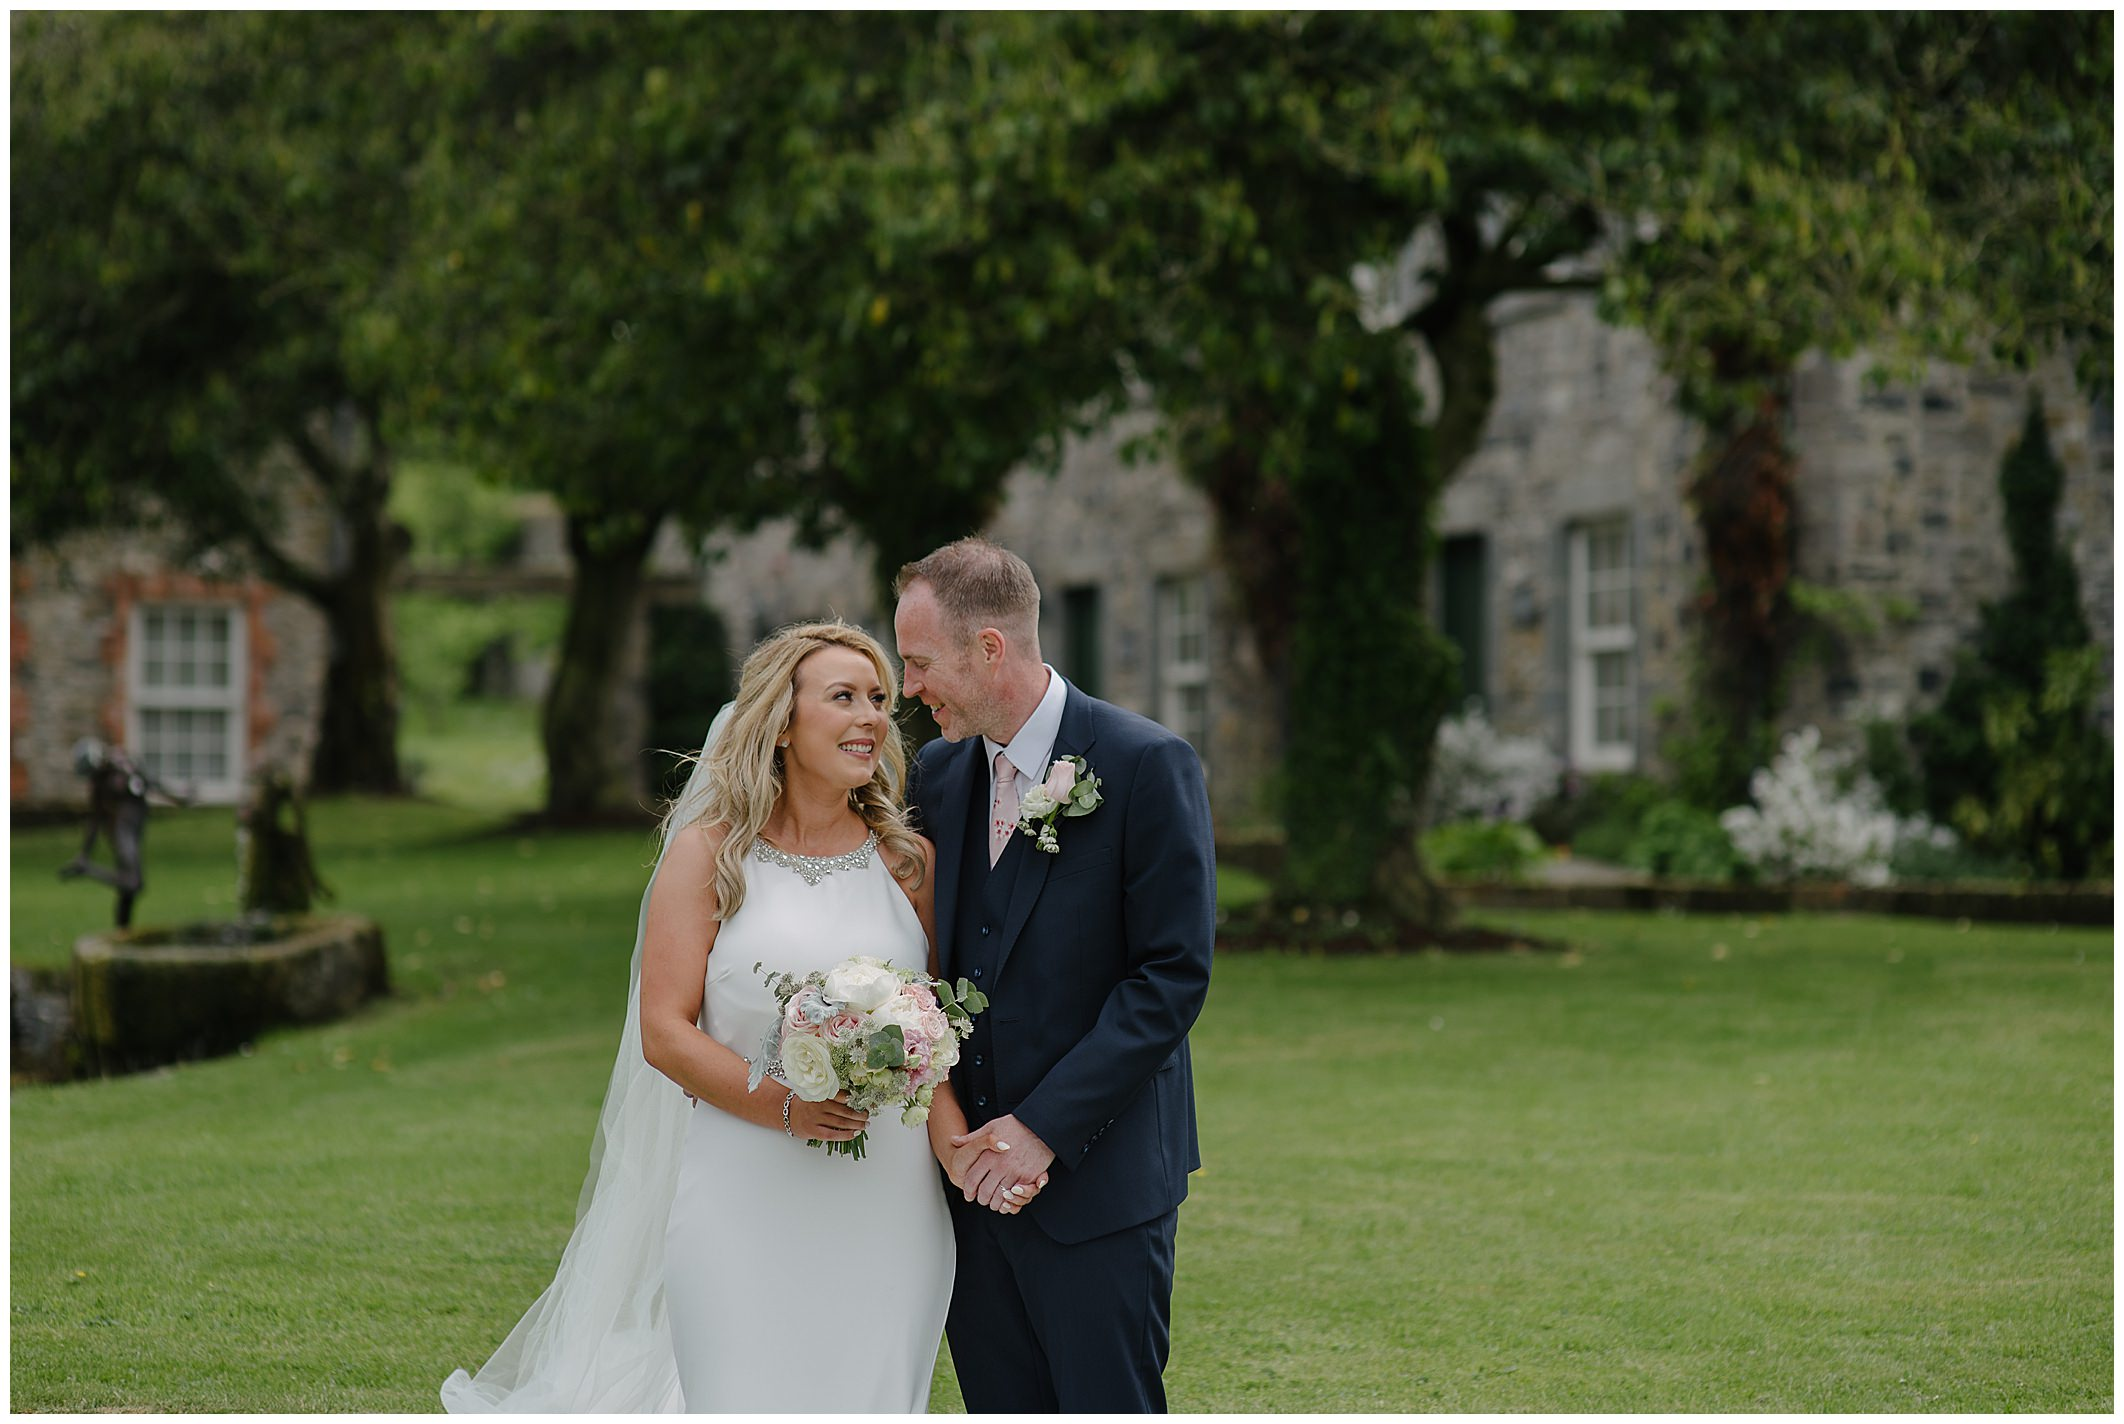 ballymagarvey-village-wedding-jude-browne-photography-109.jpg